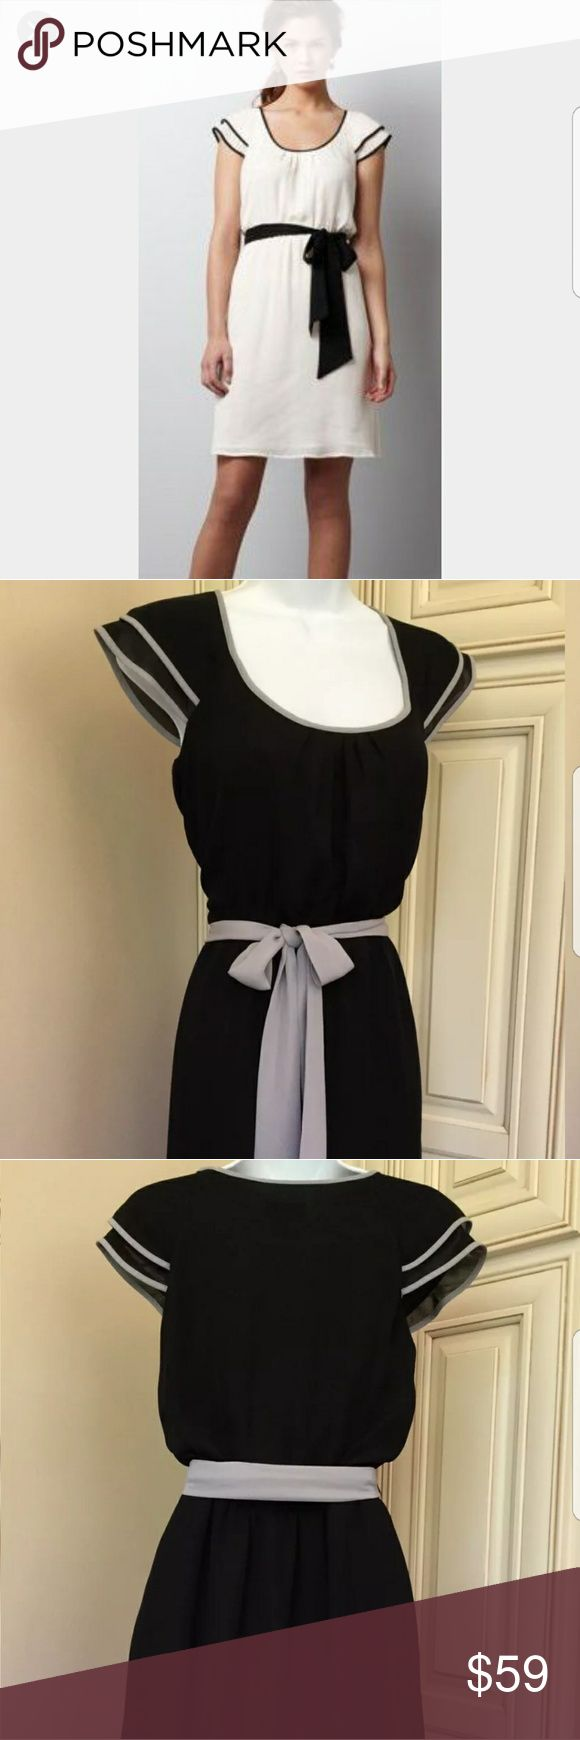 ANN TAYLOR LOFT FLUTTER SLEEVE DRESS SIZE 10P BRAND NEW NEVER WORN. GORGLRS BLACK DRESS WITH DOVE GRAY PIPING DETAIL ON THE SLEEVES TO MATCH THE CHIFFON BELT. SIZE 10P. ANN TAYLOR LOFT Dresses